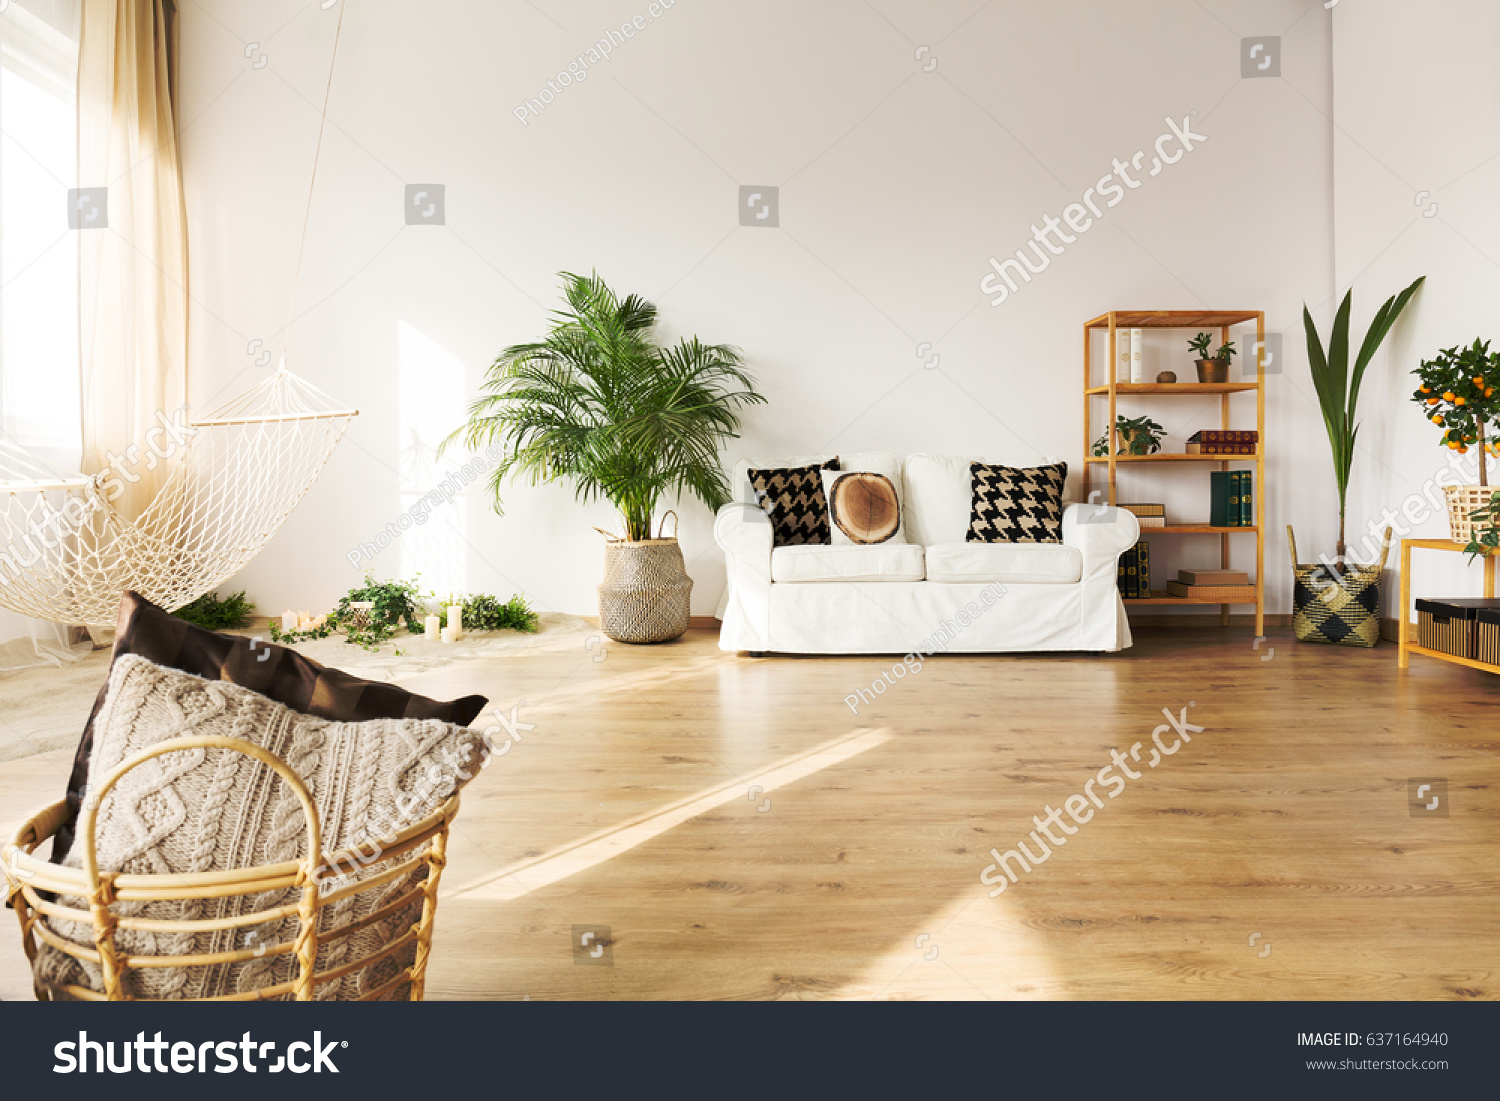 Perfect Living Room With Sofa, Hammock, Bookcase, Plant, Hardwood Floor